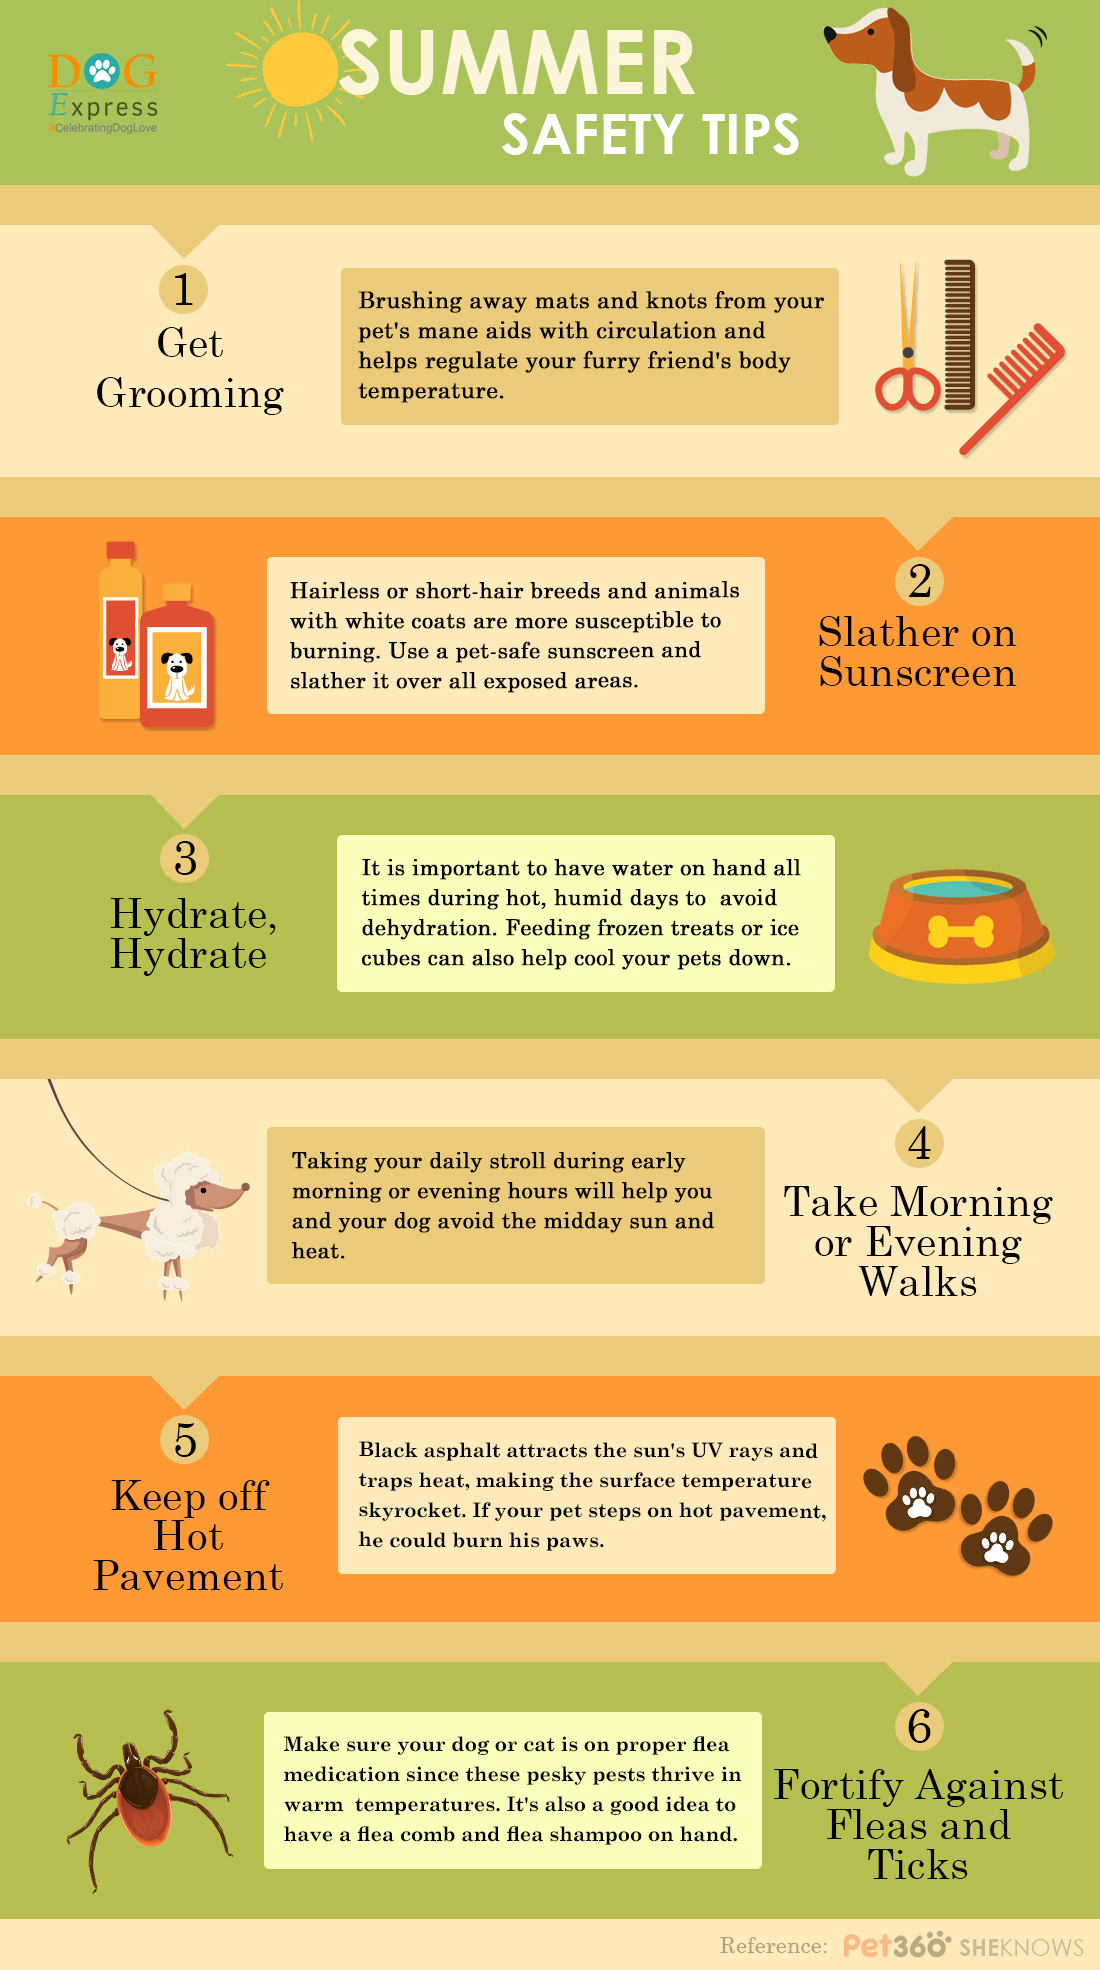 Summer safety tips for dogs infographic